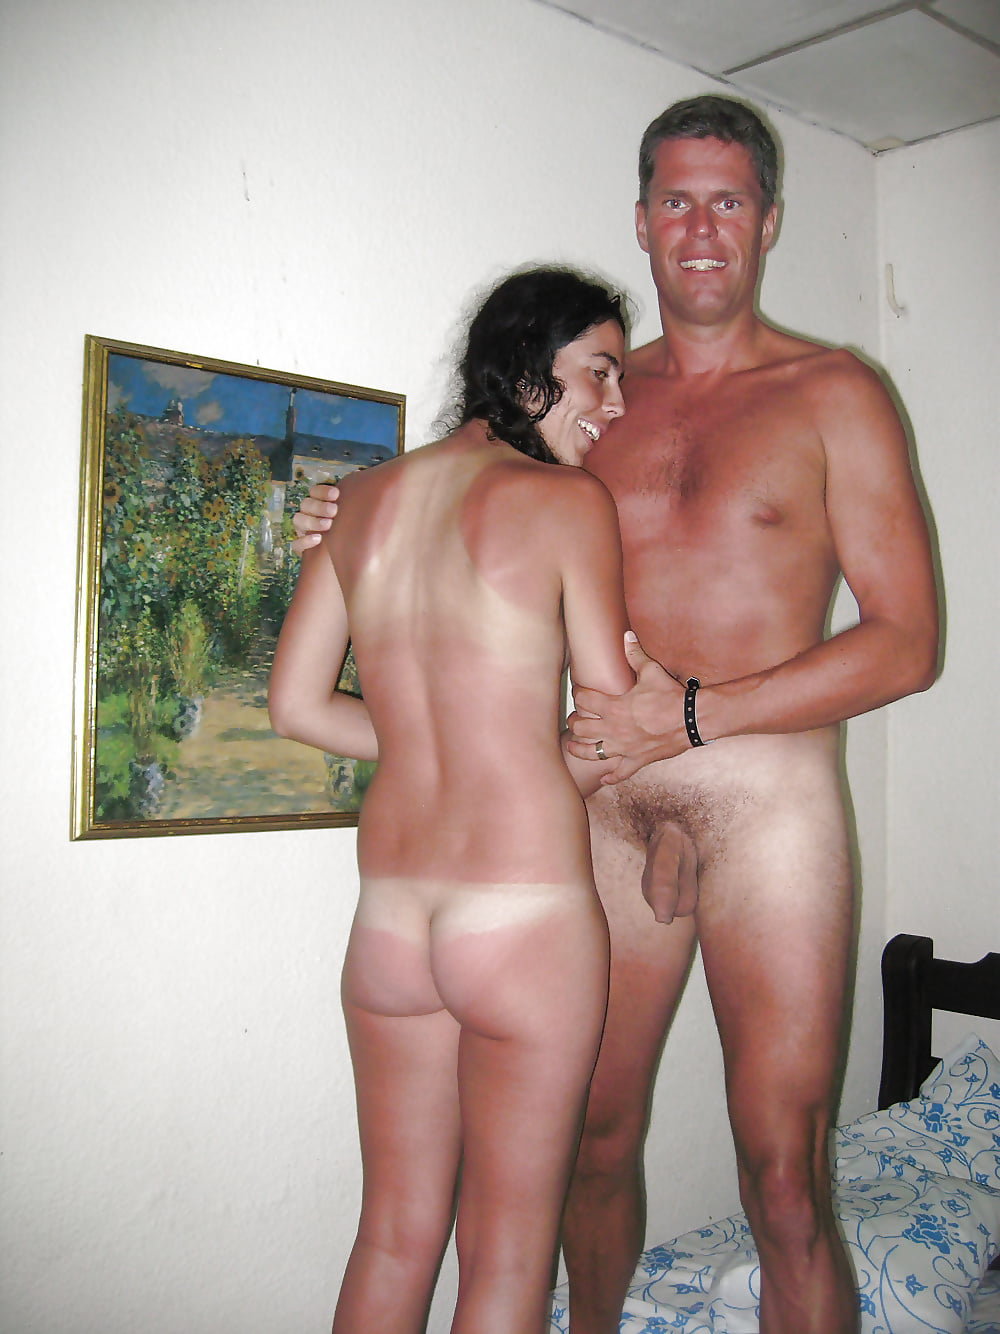 Family guys wife naked, nephew and uncle naked